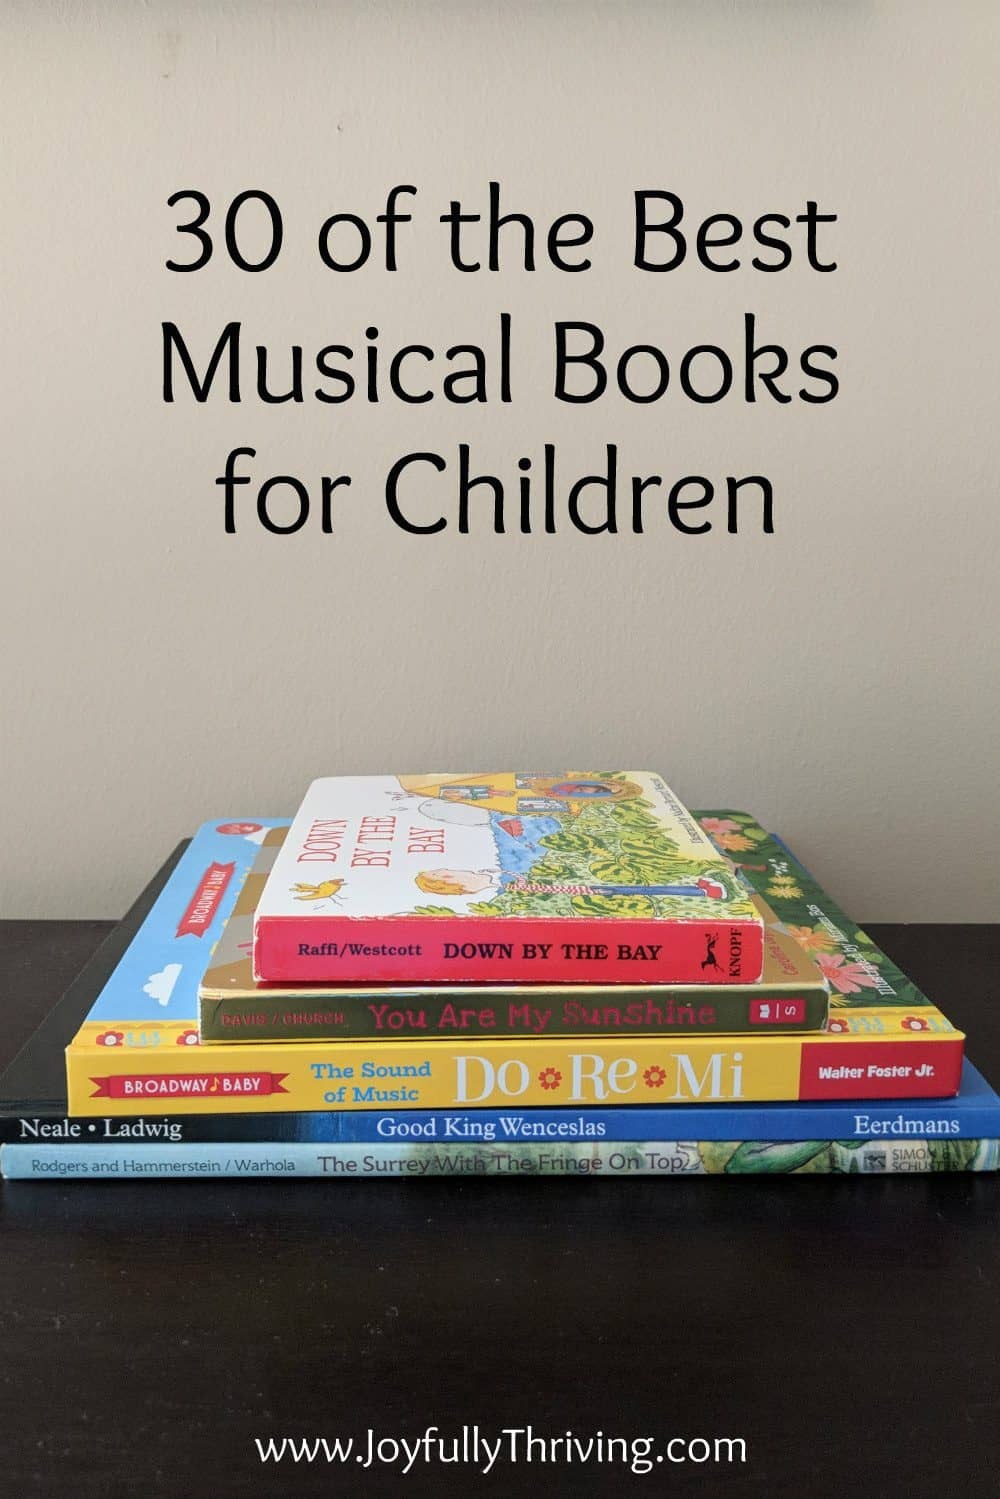 Best Musical Books for Children - Love this list! Love starting with musical books for babies and beyond!